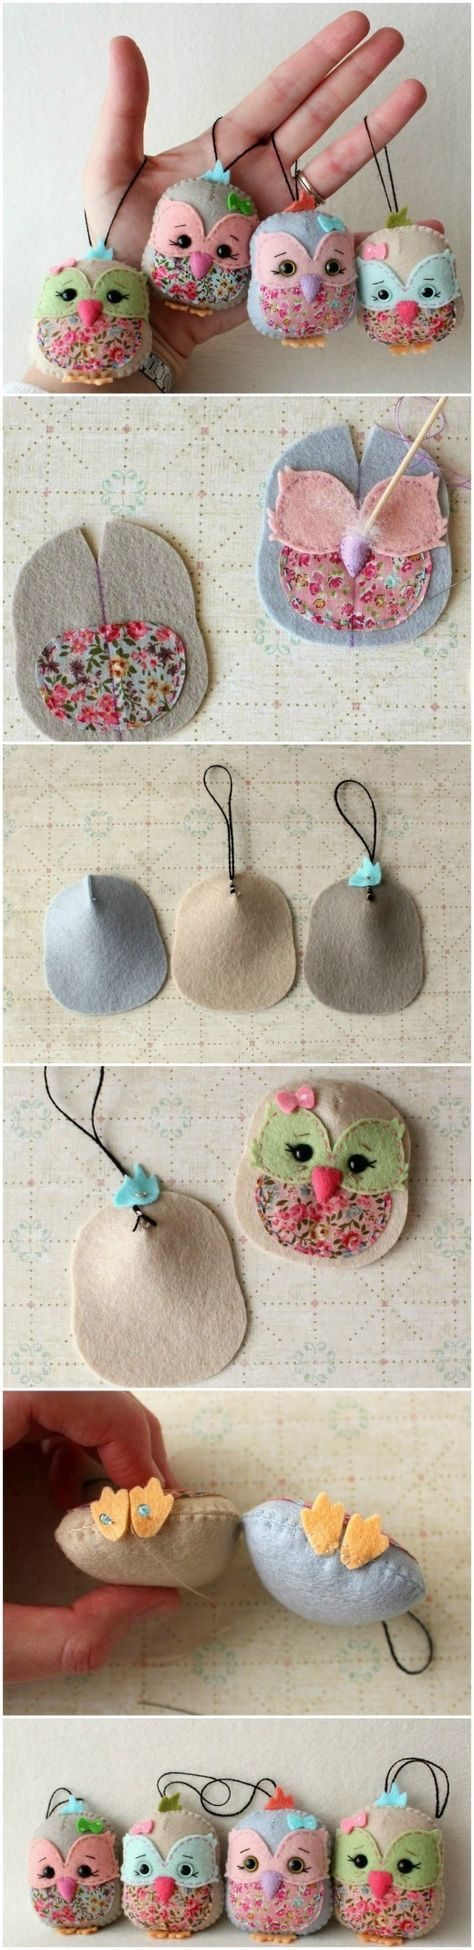 Felted Owl Scented Sachets Are Just Gorgeous | The WHOot